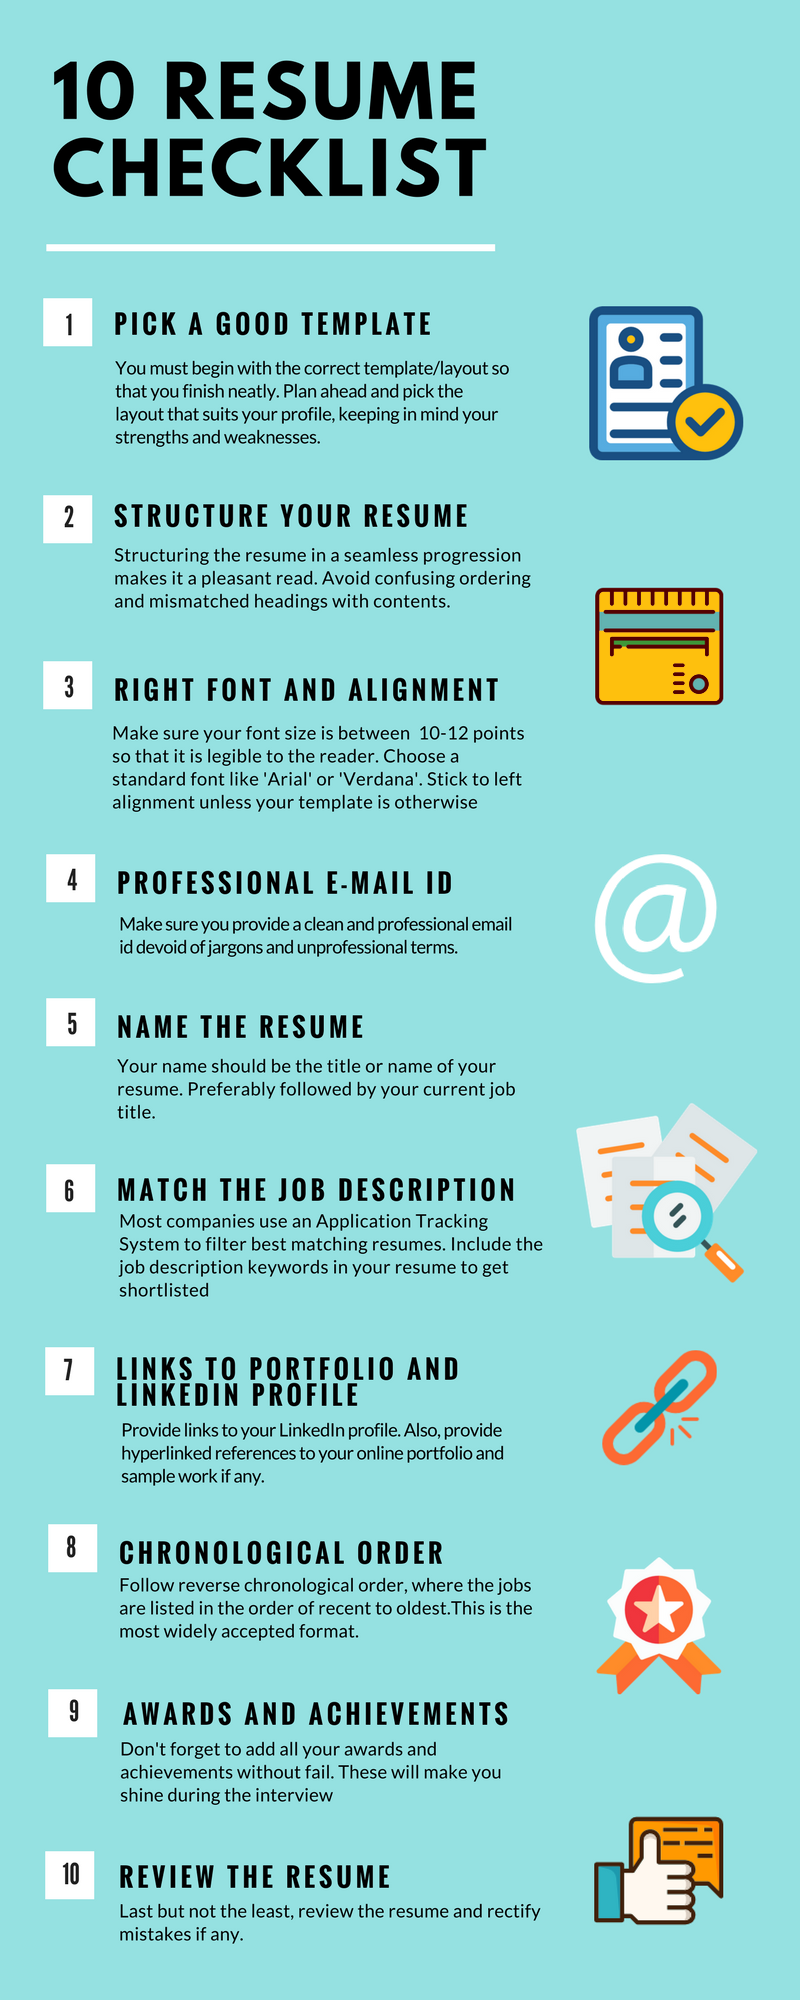 List Of Basic Resume Tips That Help You Set Things Straight Irrespective Of  Your Profile.